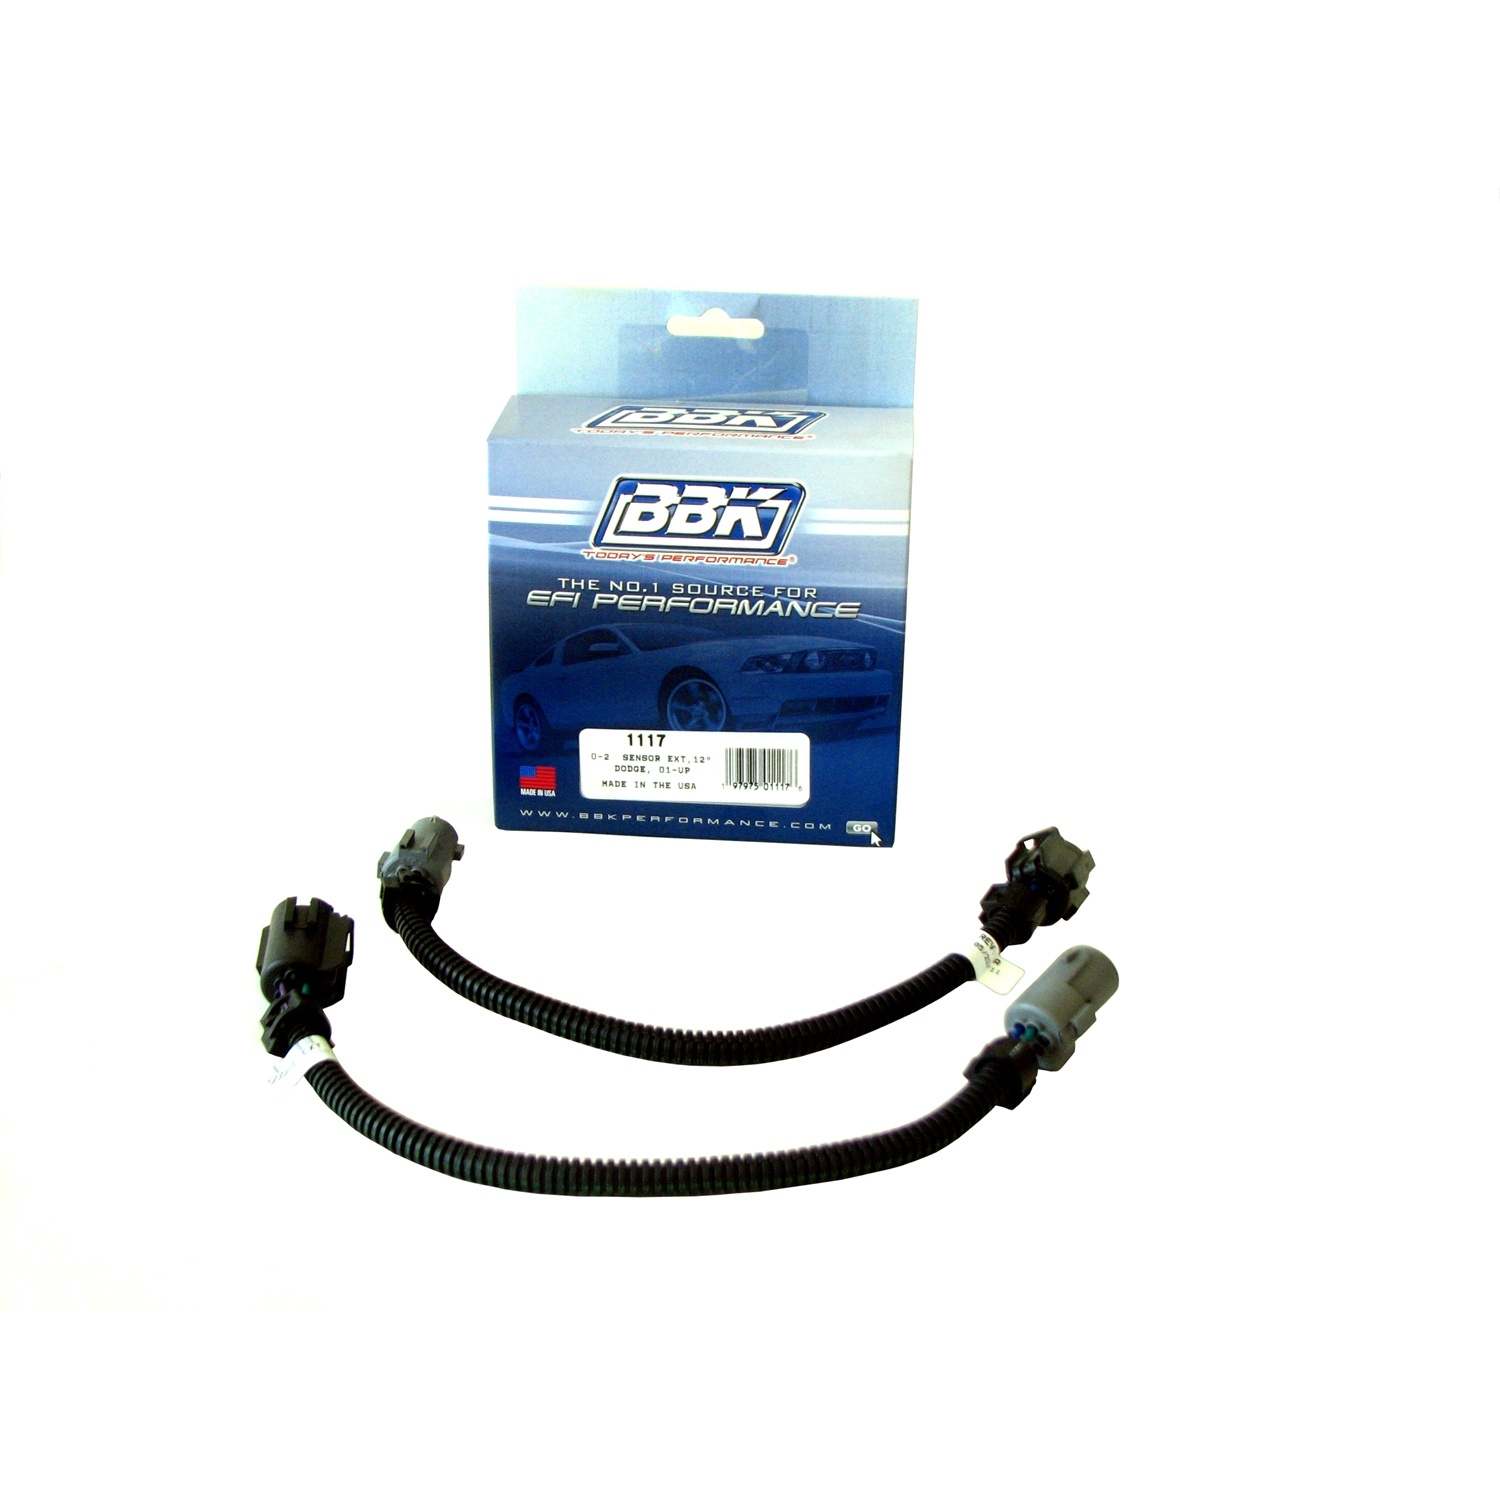 BBK Performance Parts 1117 O2 Sensor Wire Extension Harness